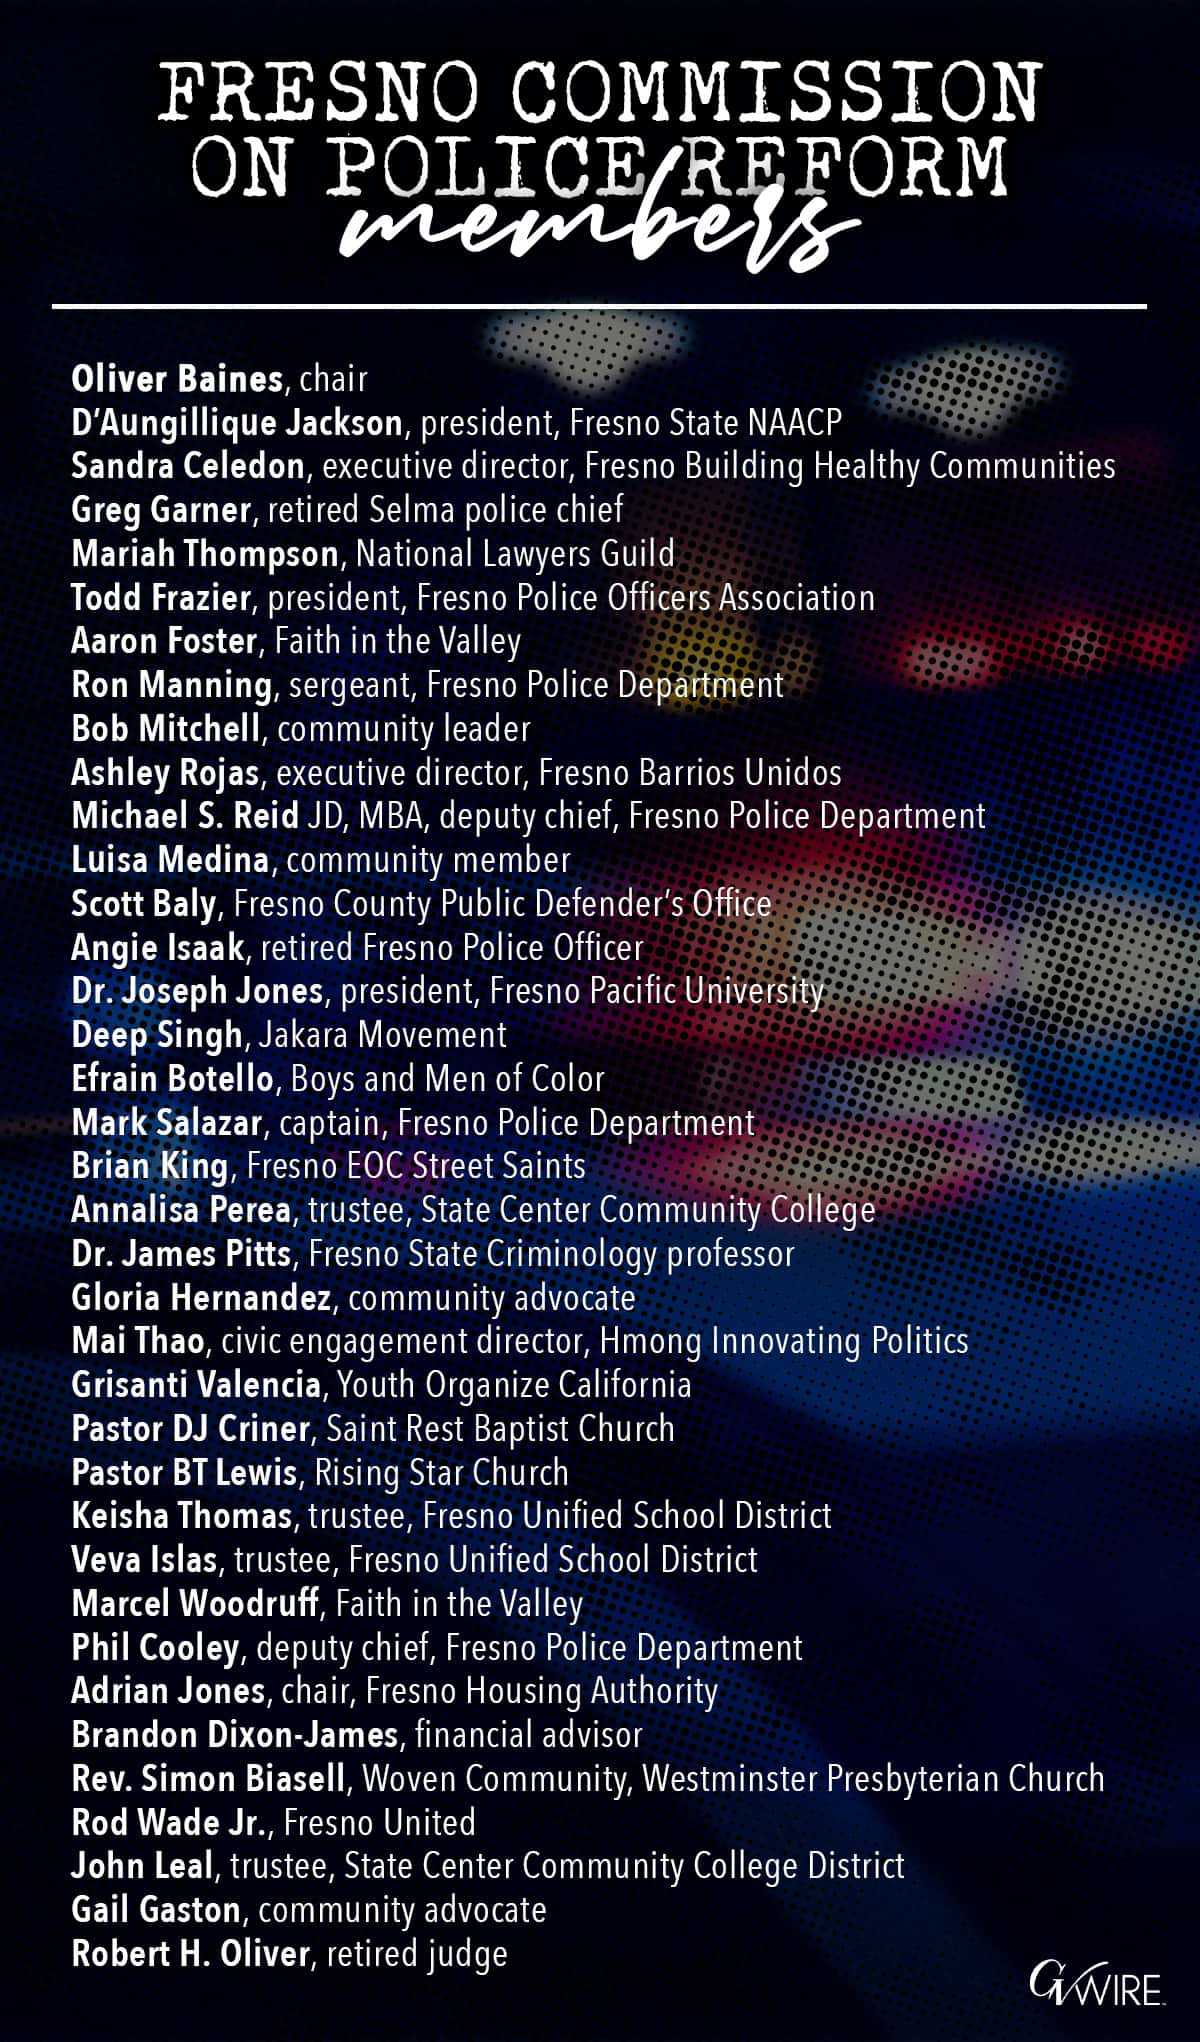 Image of the names of the people serving on the Fresno Commission on Police Reform